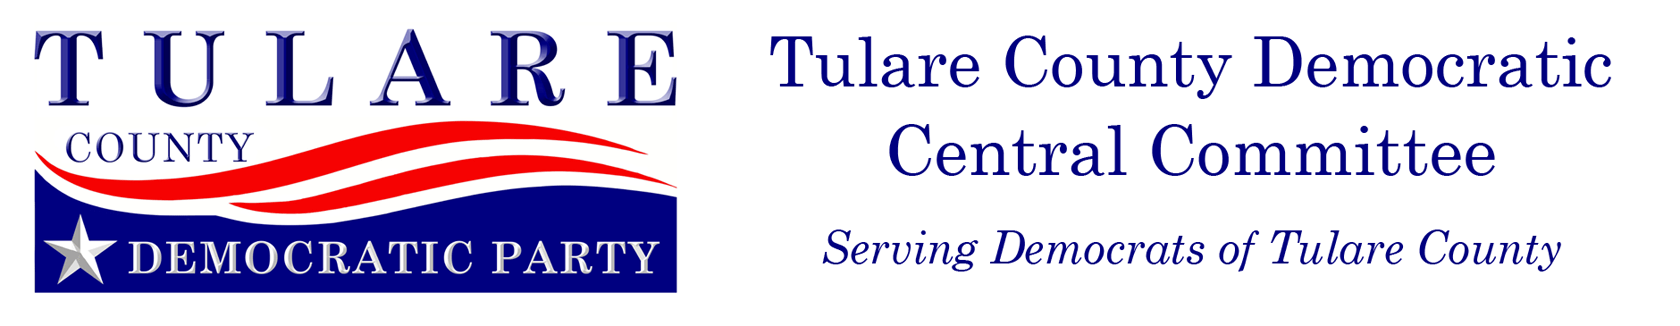 Tulare County Democratic Central Committee